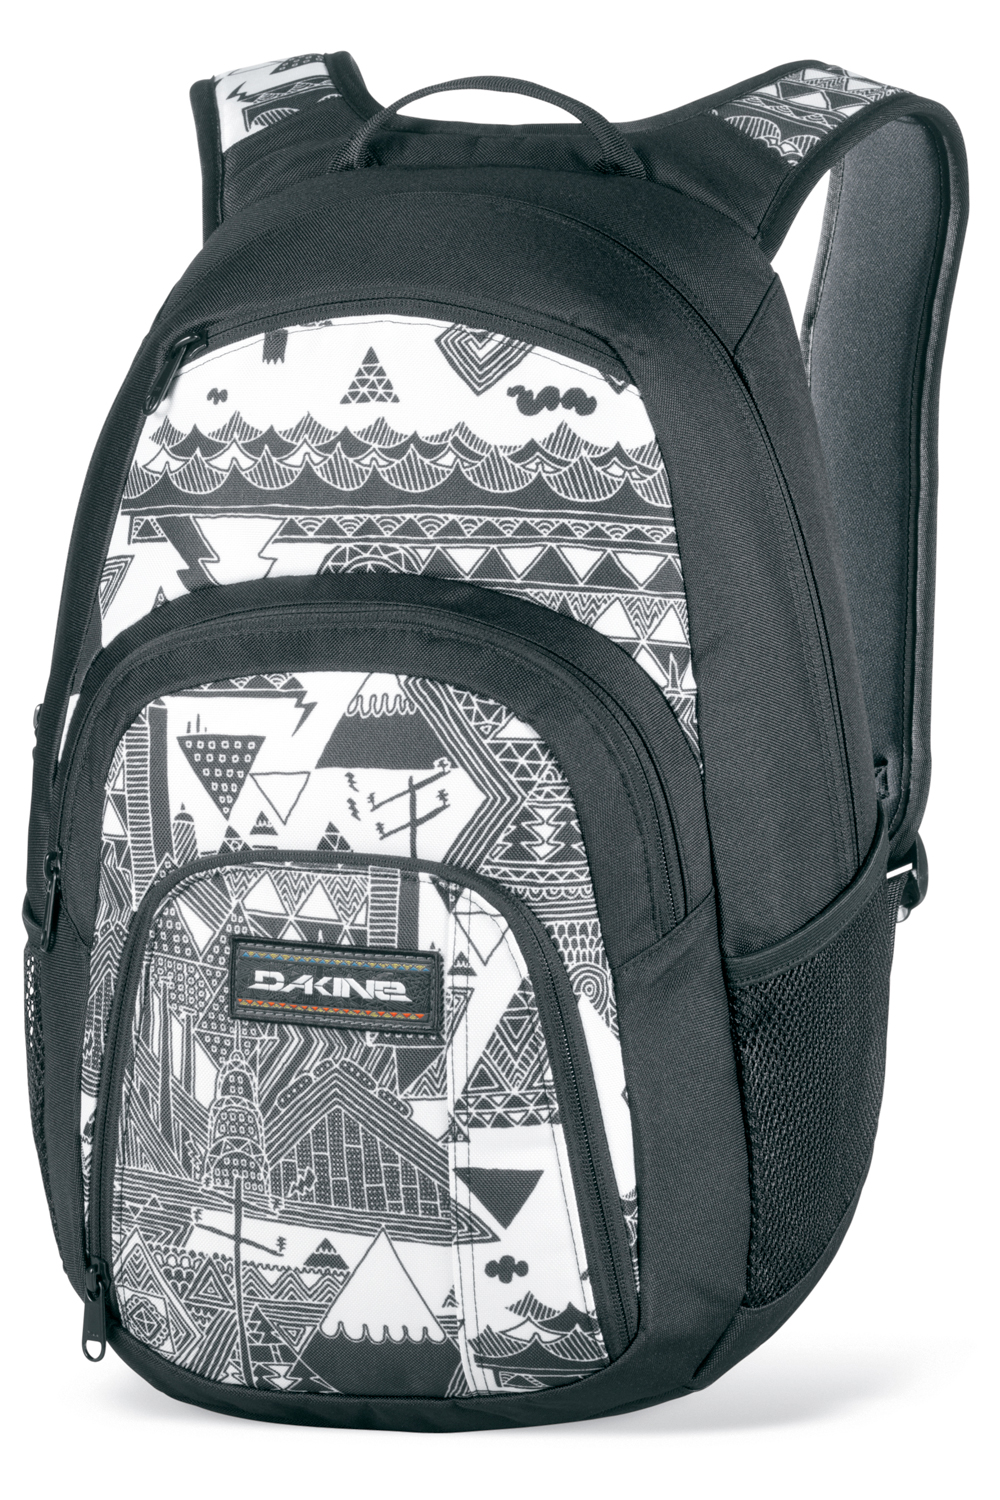 Dakine Campus 25L Backpack - Crazy Backpacks